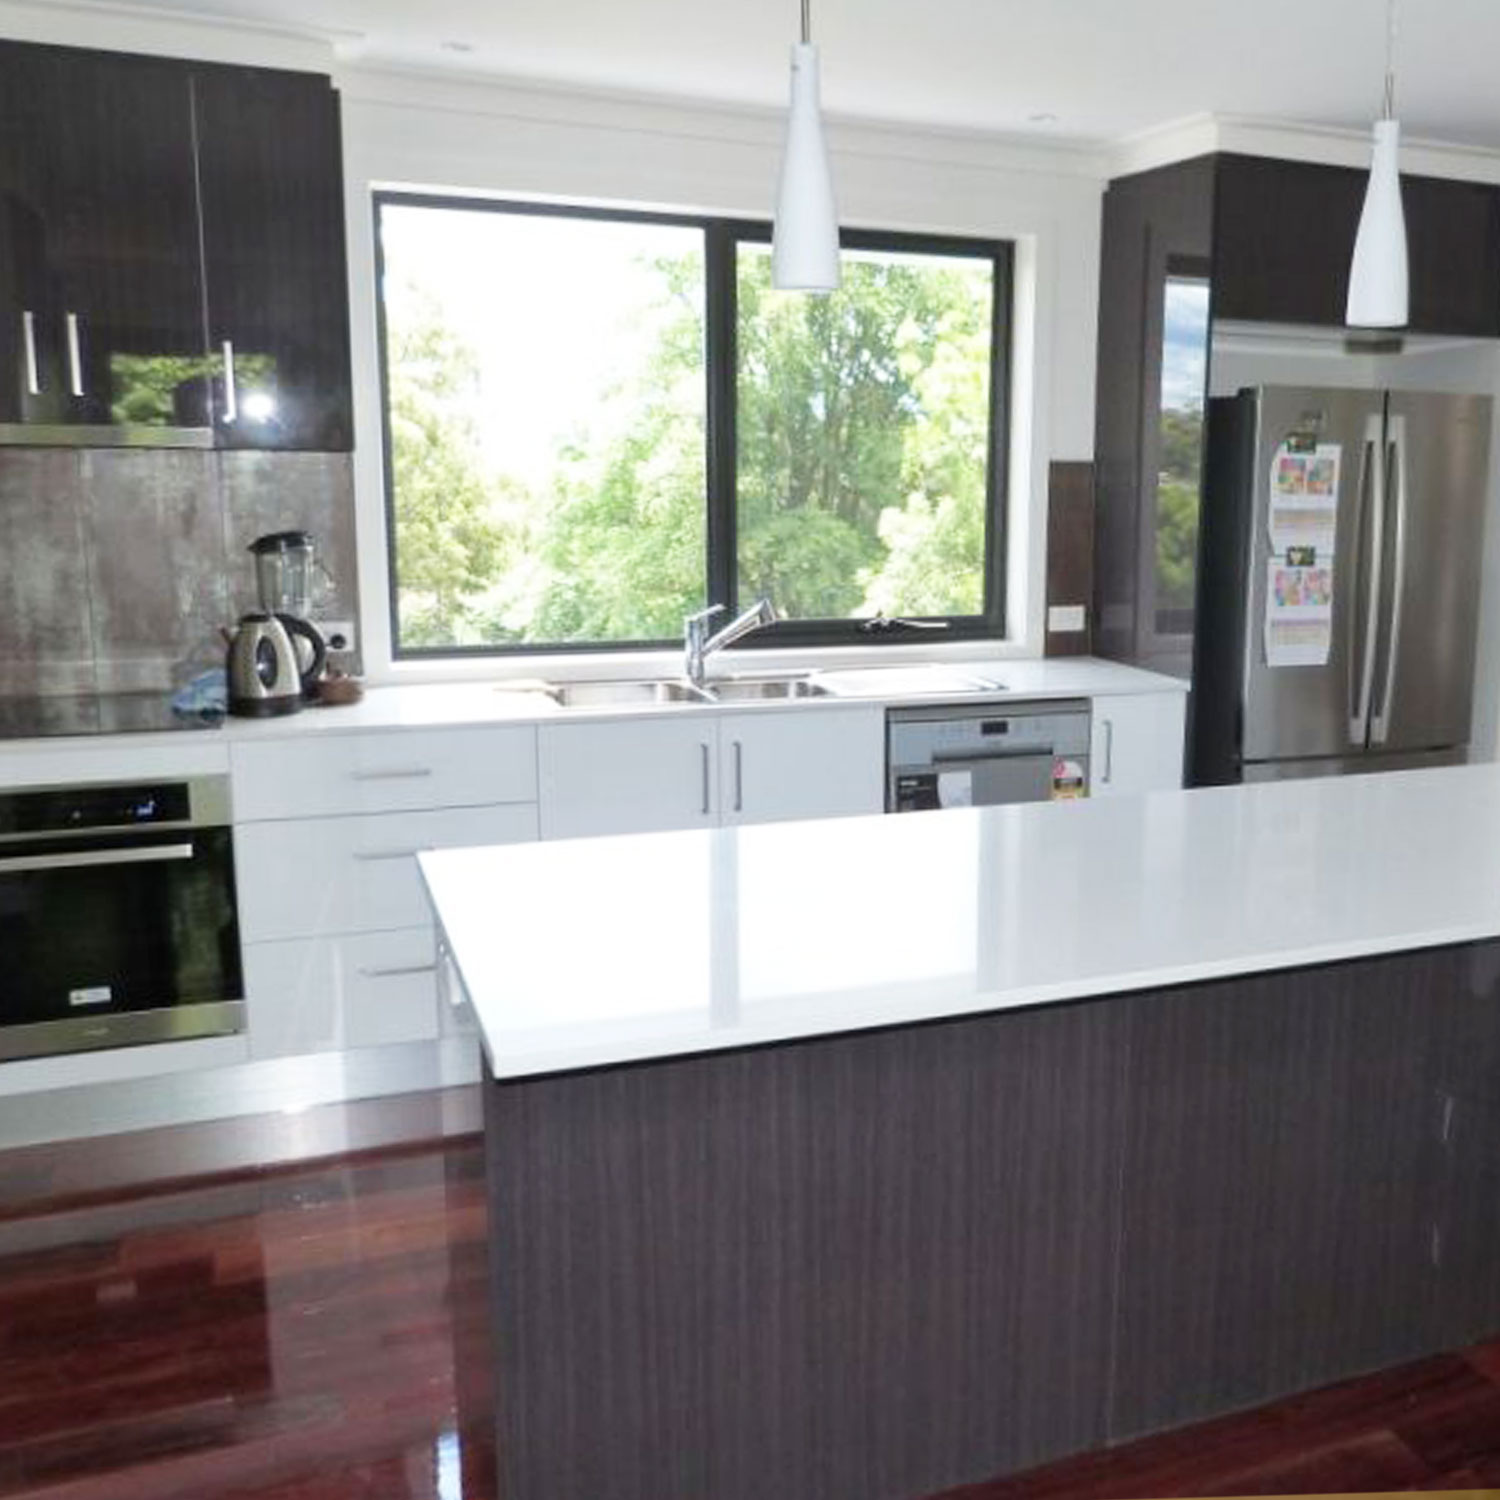 Redburn Kitchens Launceston - We design, manufacture and install ...